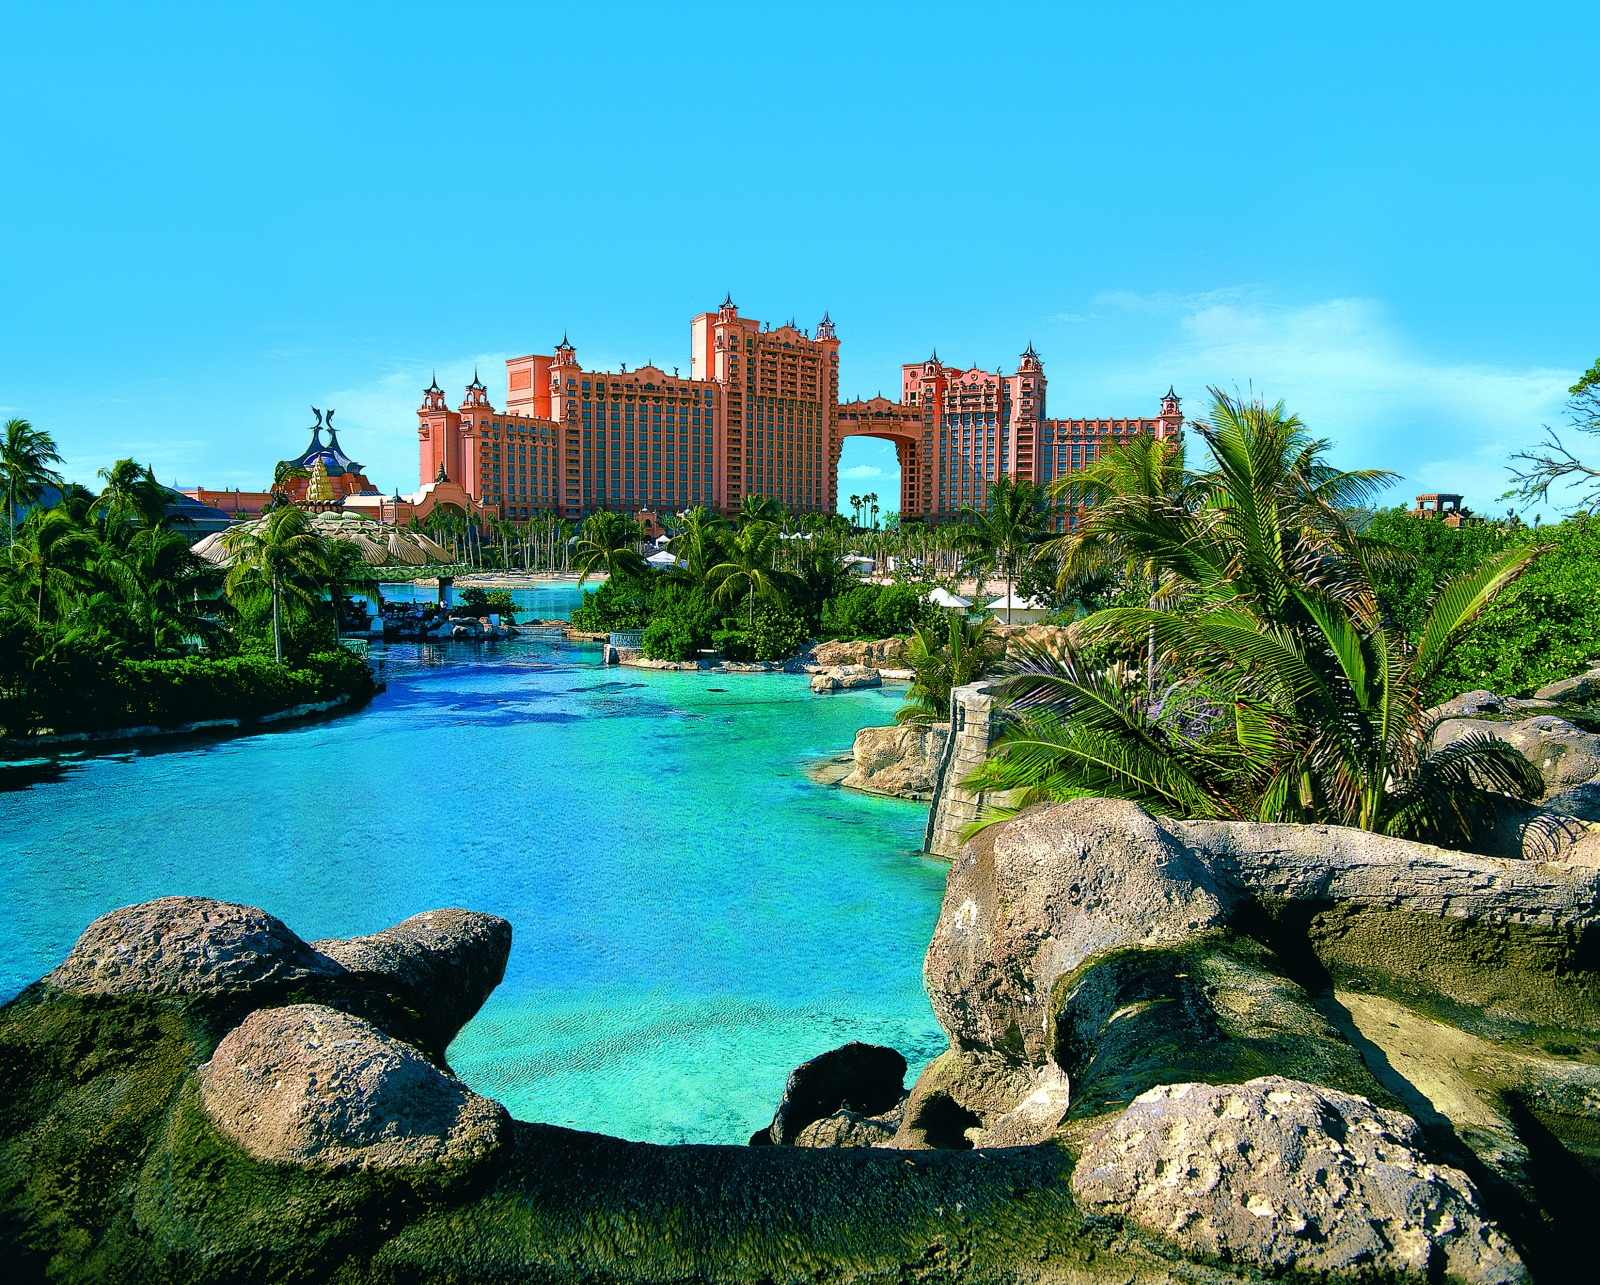 Atlantis Paradise Island resort in The Bahamas